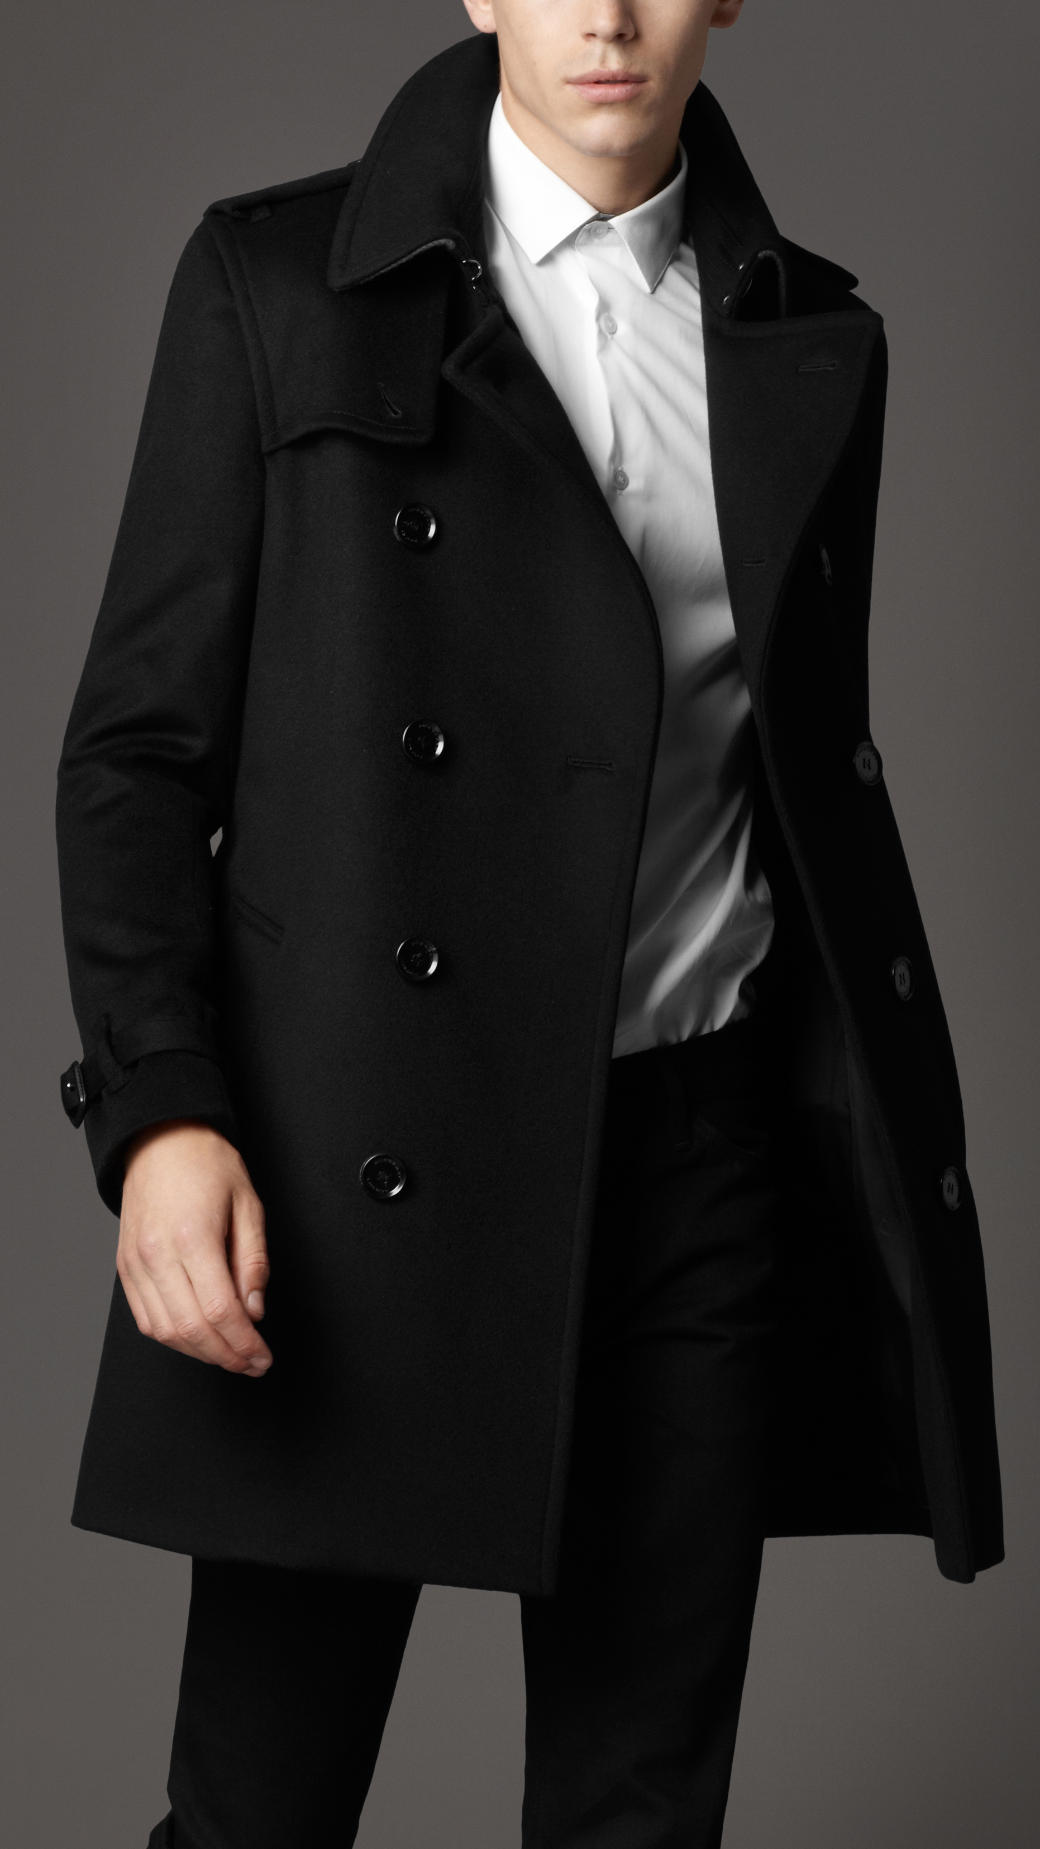 Discover our stylish range of men's wool coats at ASOS. Our range includes men's wool jackets and coats in different colors and styles to keep you warm. HUGO Meskar slim fit wool overcoat with ribbed collar in black. $ Selected Homme recycled wool duffle coat with teddy lining. $ Only & Sons Wool Mix Harrington. $